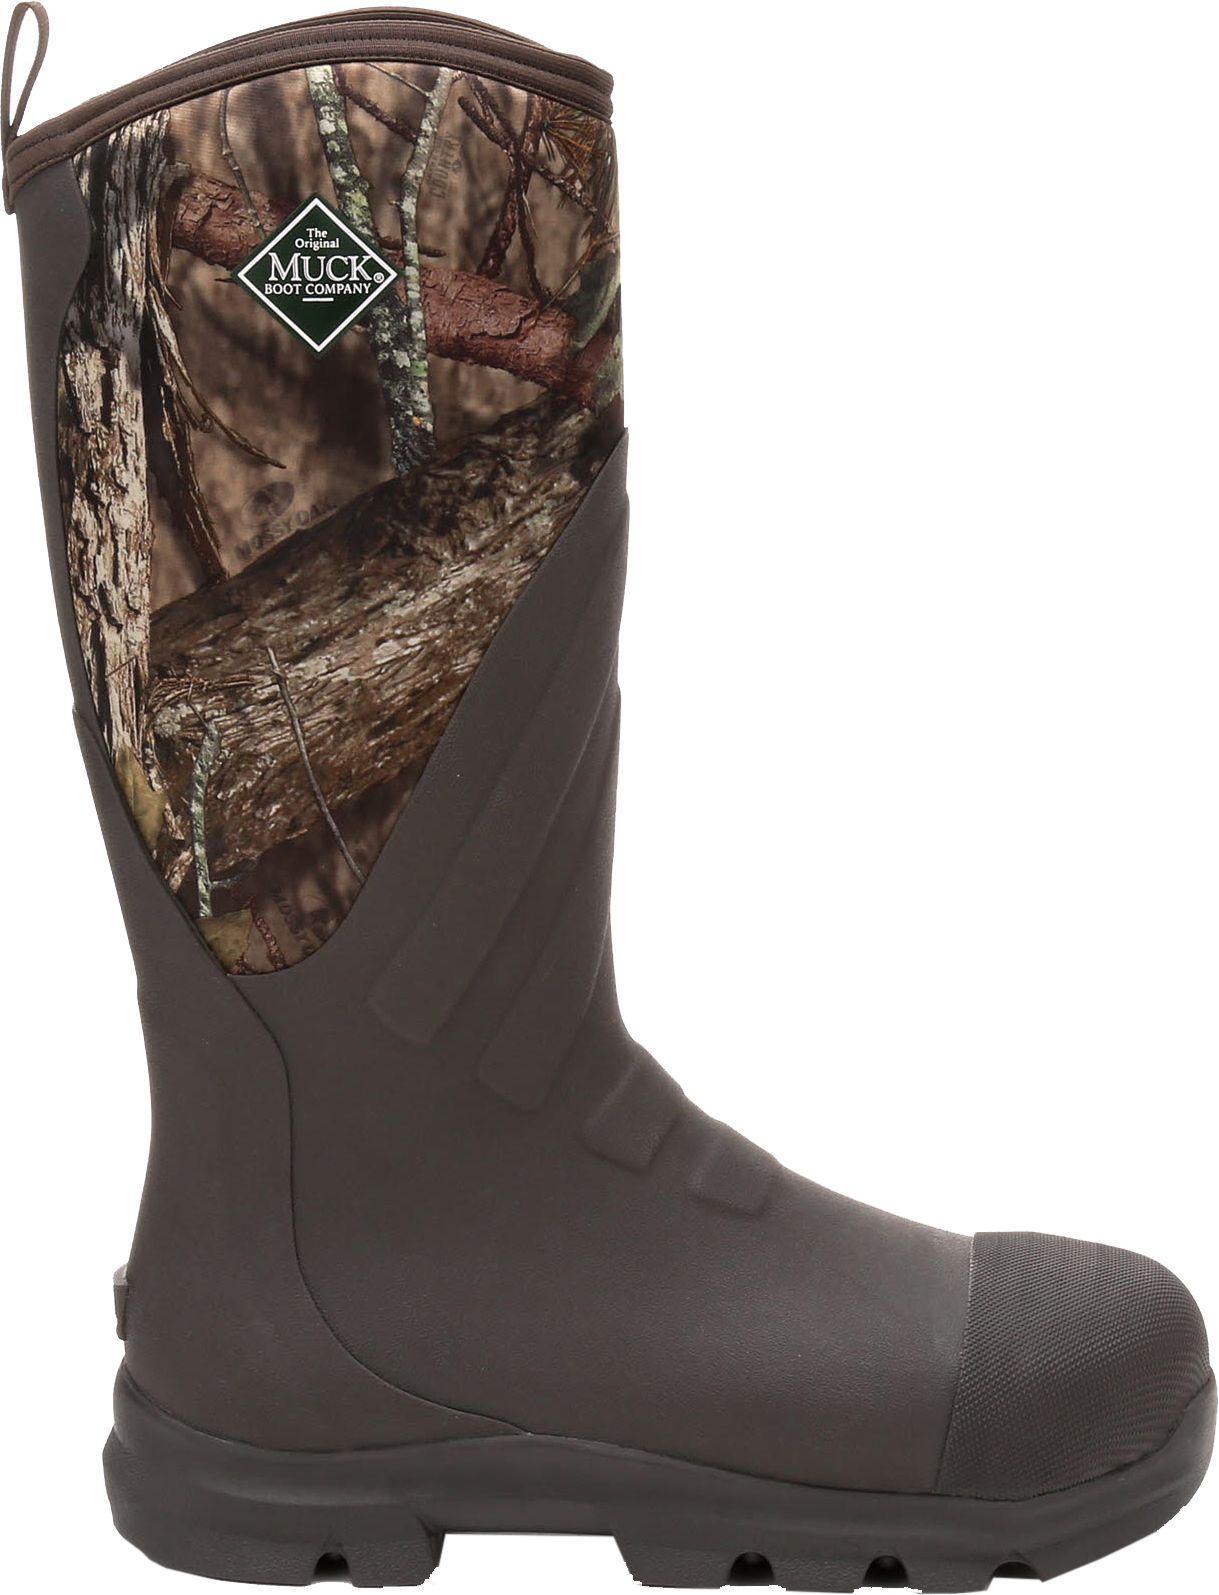 Rubber Boots & Waterproof Boots | DICK'S Sporting Goods